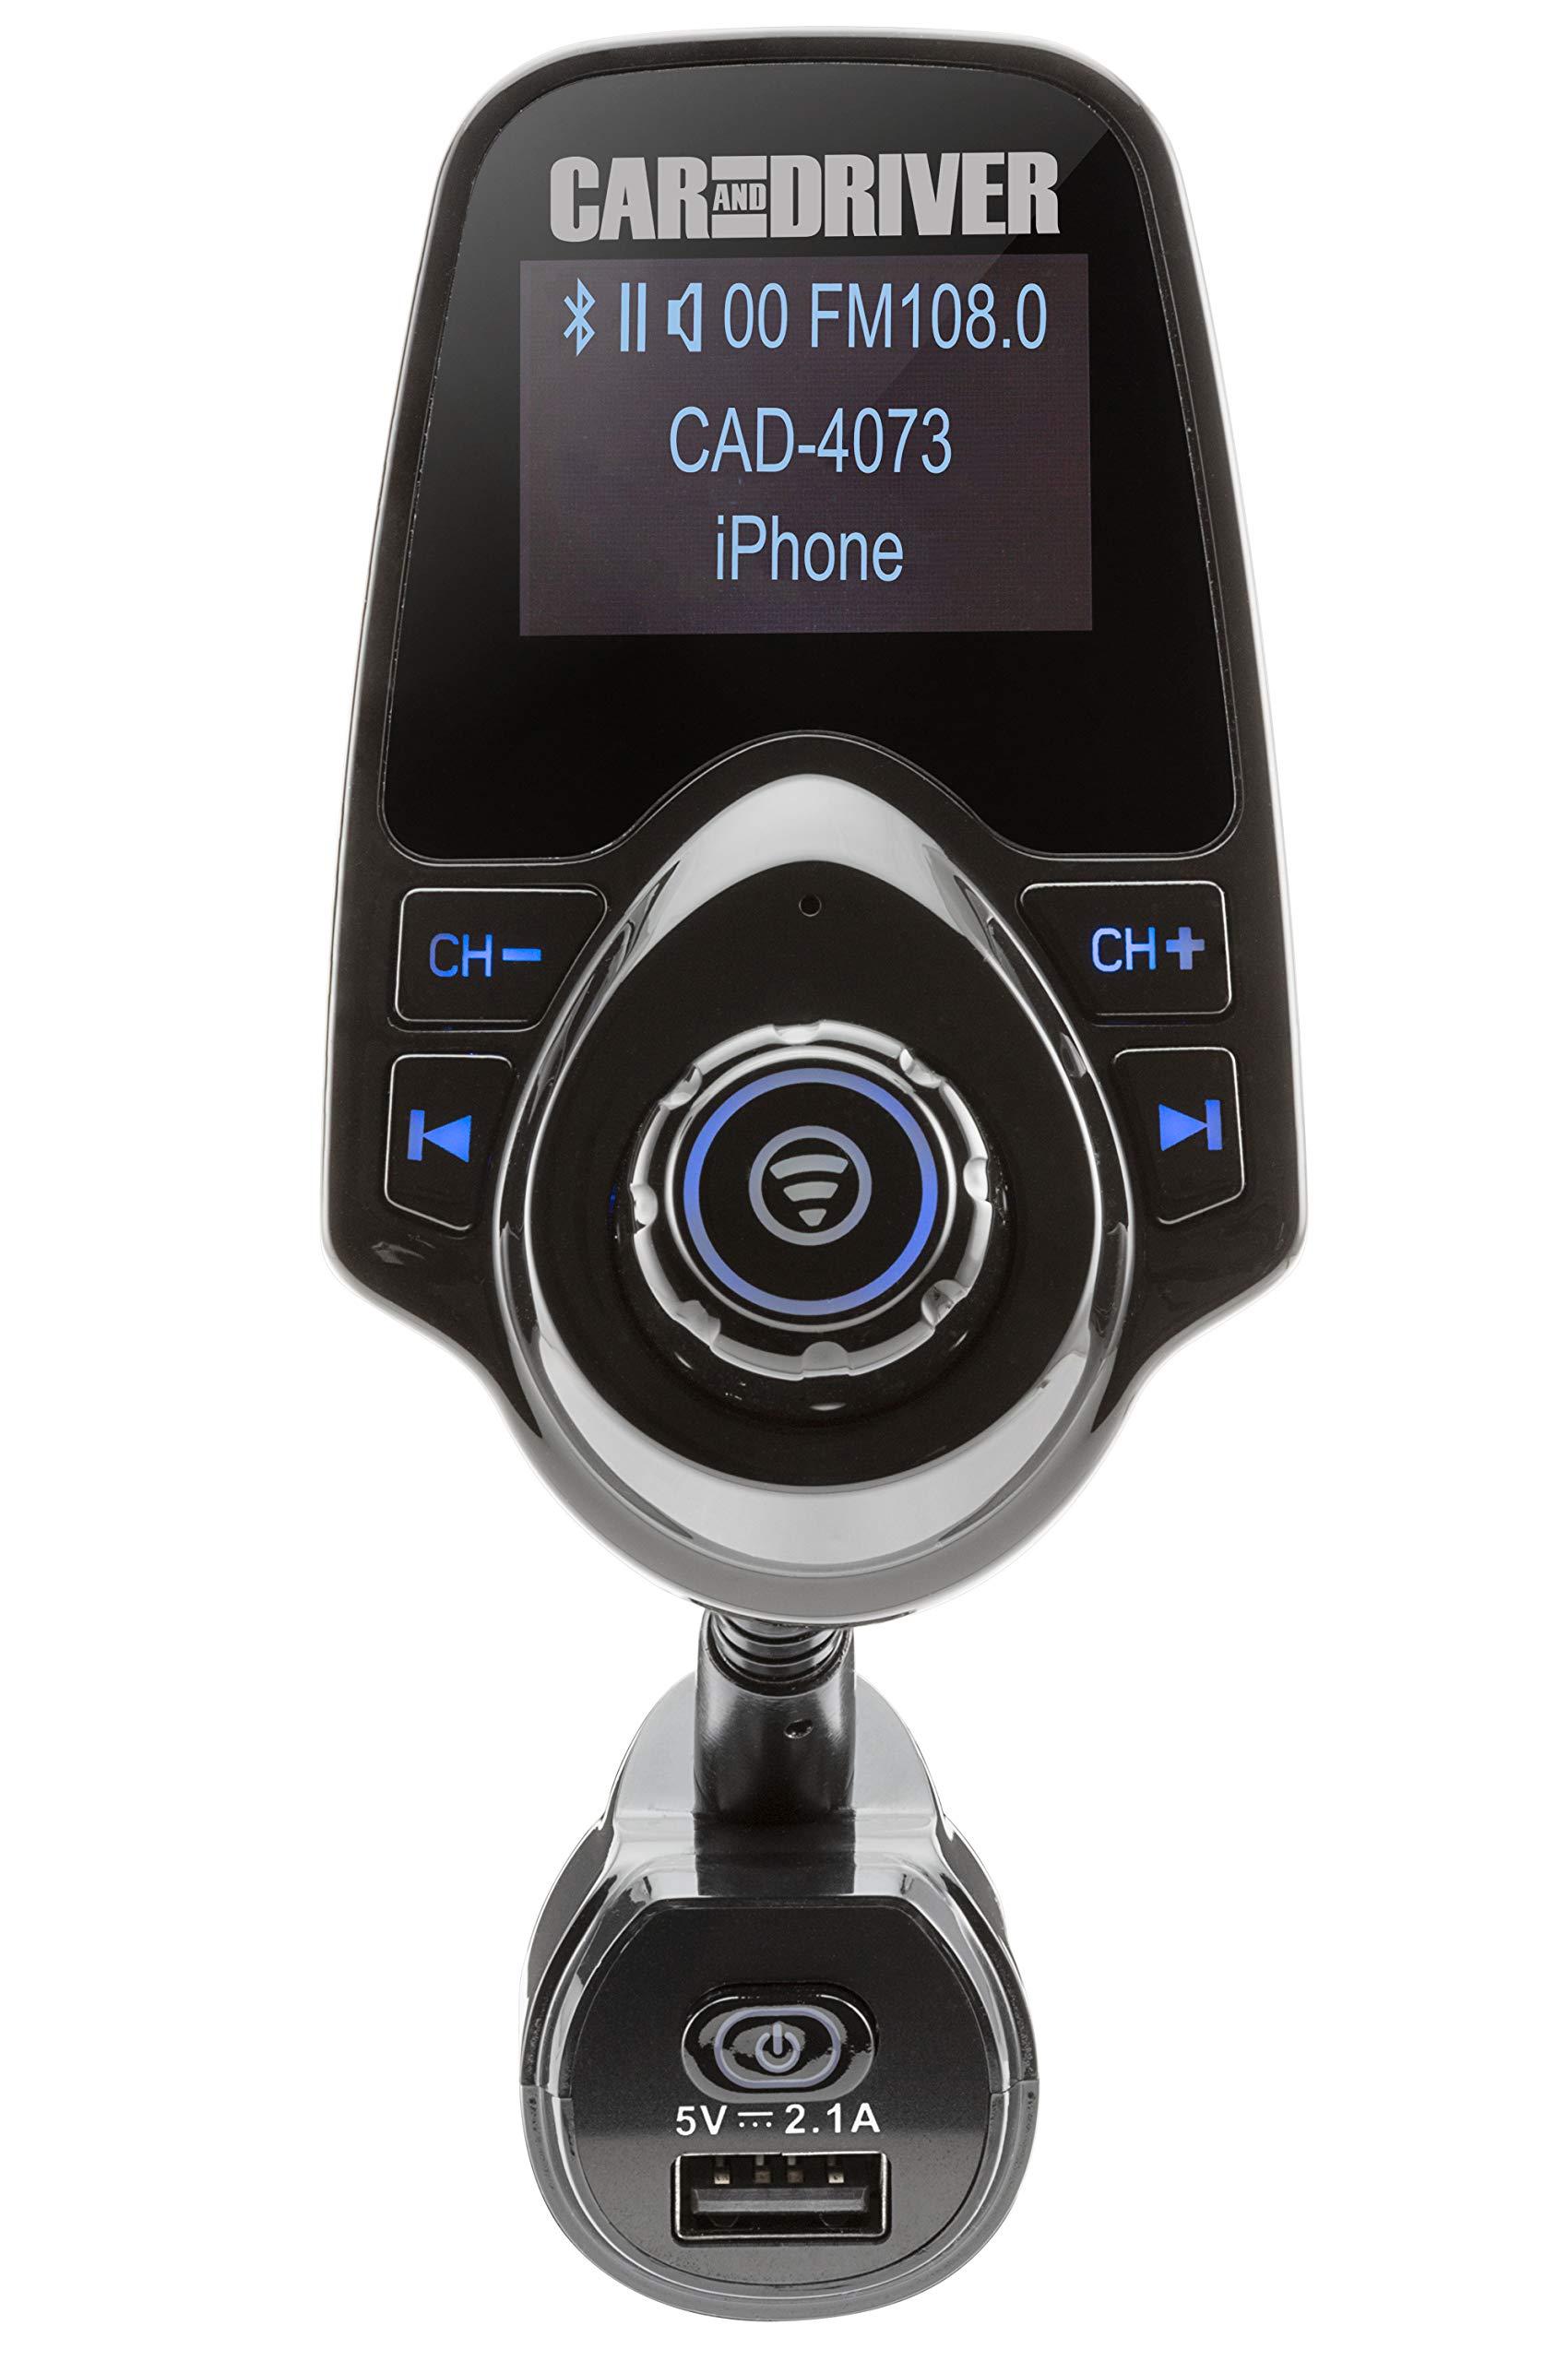 Car And Driver Wireless Bluetooth FM Transmitter Audio Adapter Wireless Receiver with AUX USB Input - Hands Free Phone Speaker Voltmeter, 1.44 Display, Goose-Neck Mount